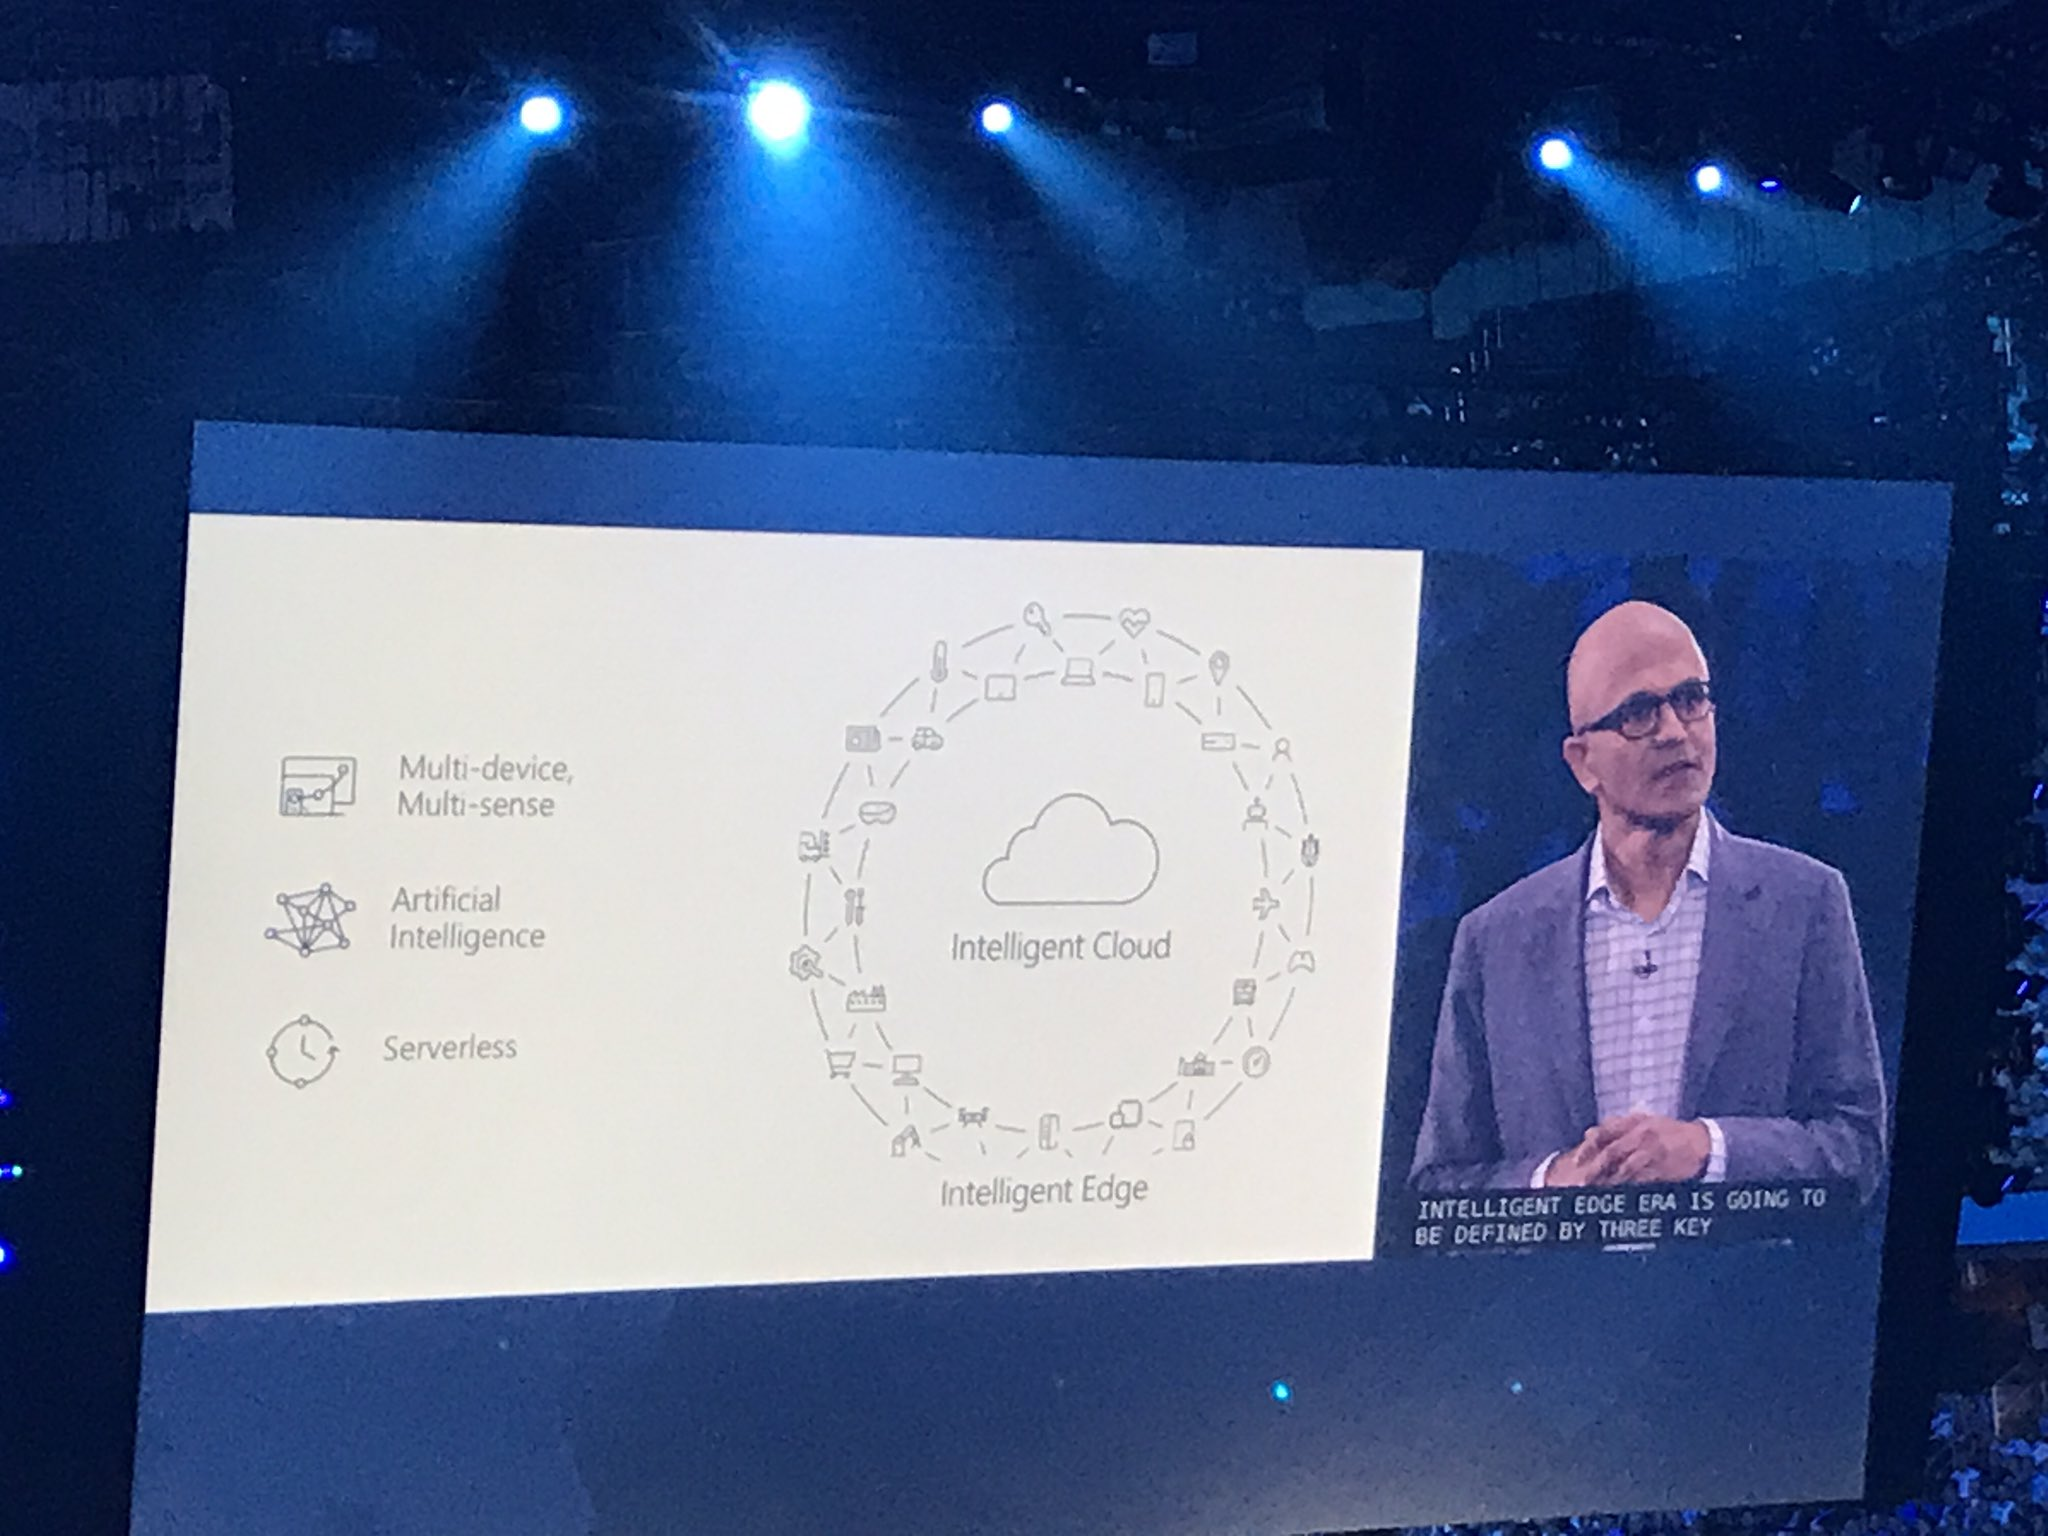 Move away from Mobile-First Cloud-First : Intelligent-Cloud Intelligent-Edge - @satyanadella #MsInspire @Microsoft #Cloud #AI #Technology https://t.co/hqh1YCwOSD